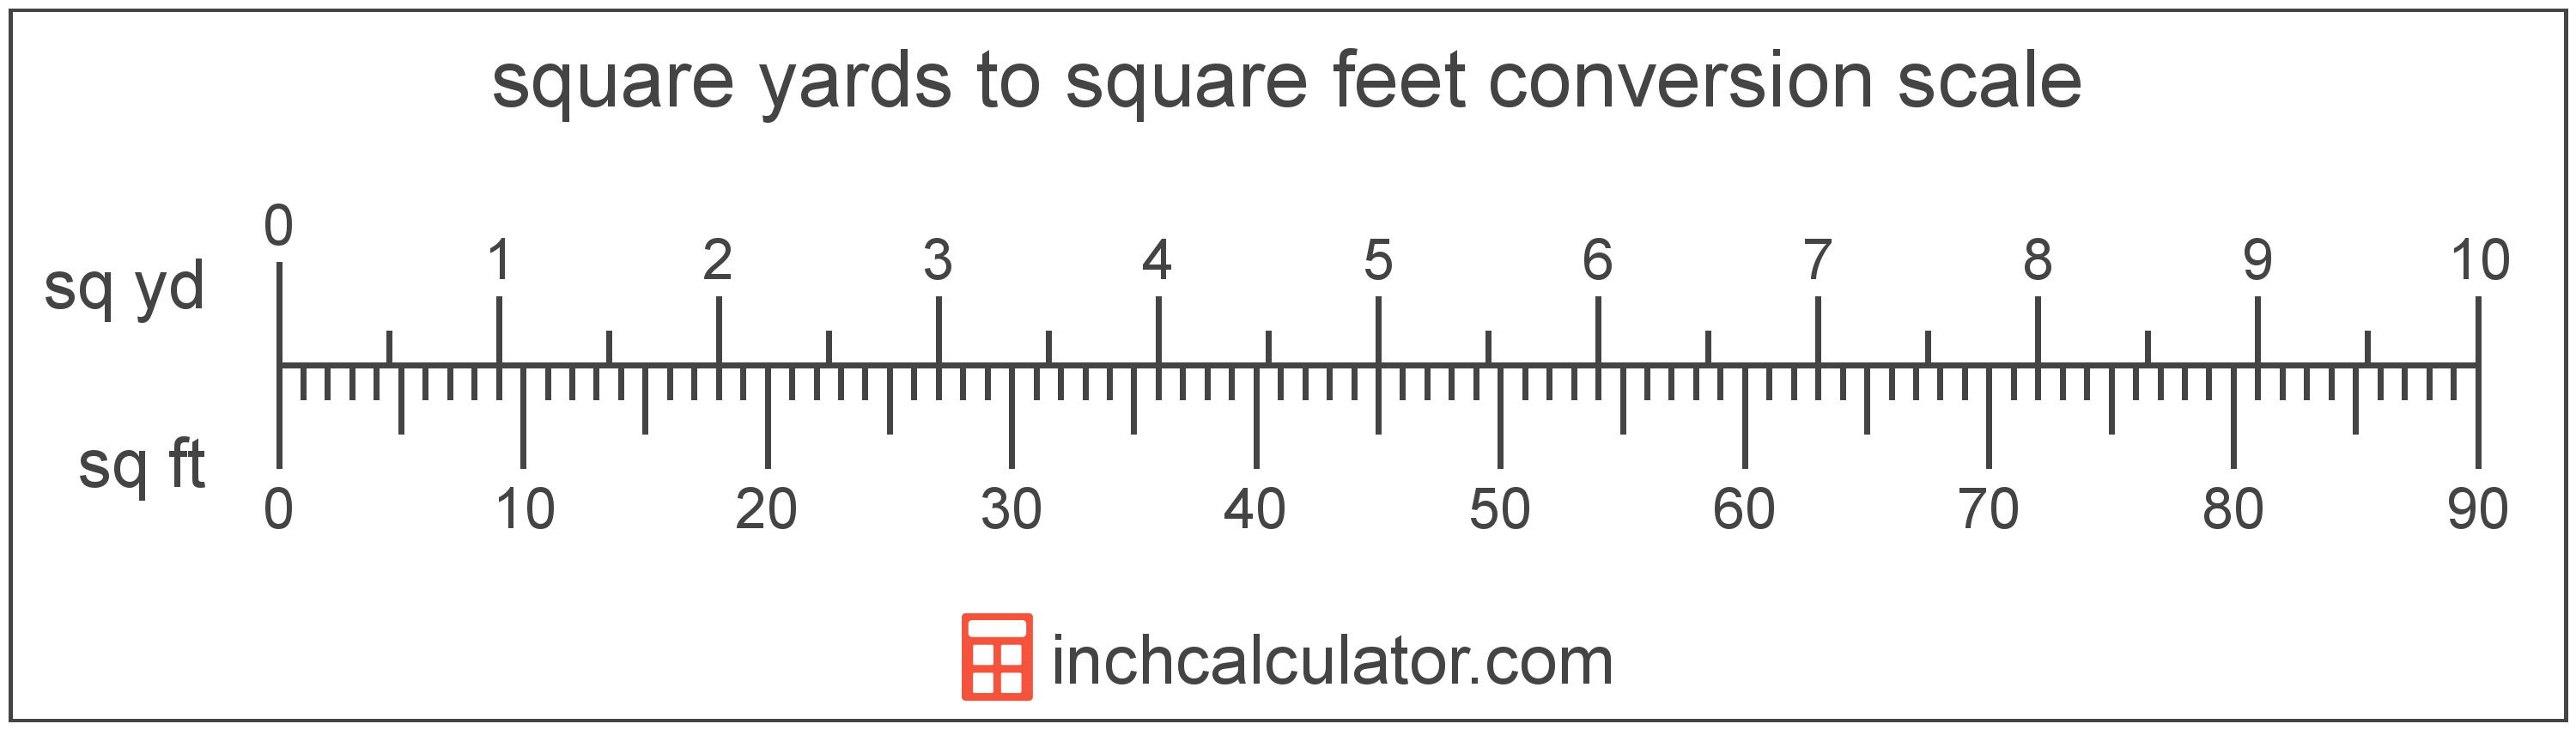 conversion scale showing square yards and equivalent square feet area values